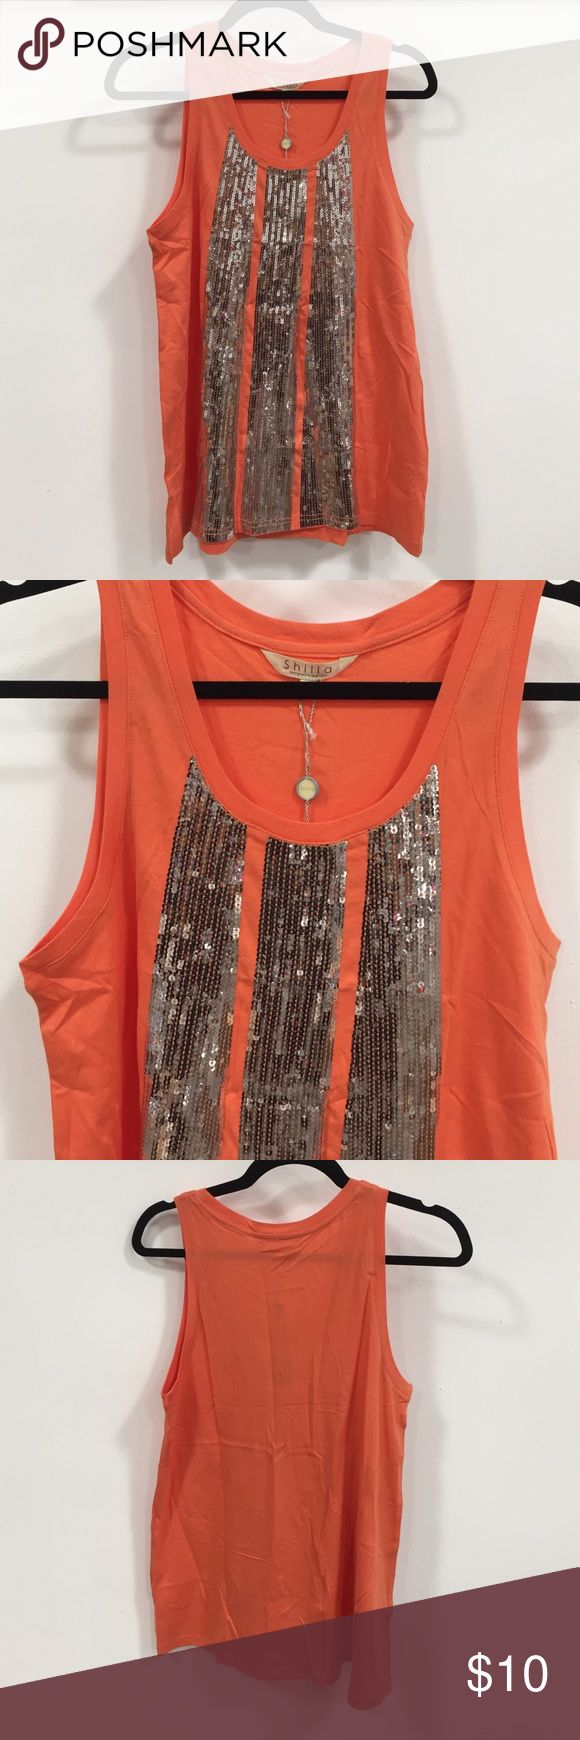 SHILLA Sequin Tank Top Sequined tank top -  new with tags Tops Tank Tops